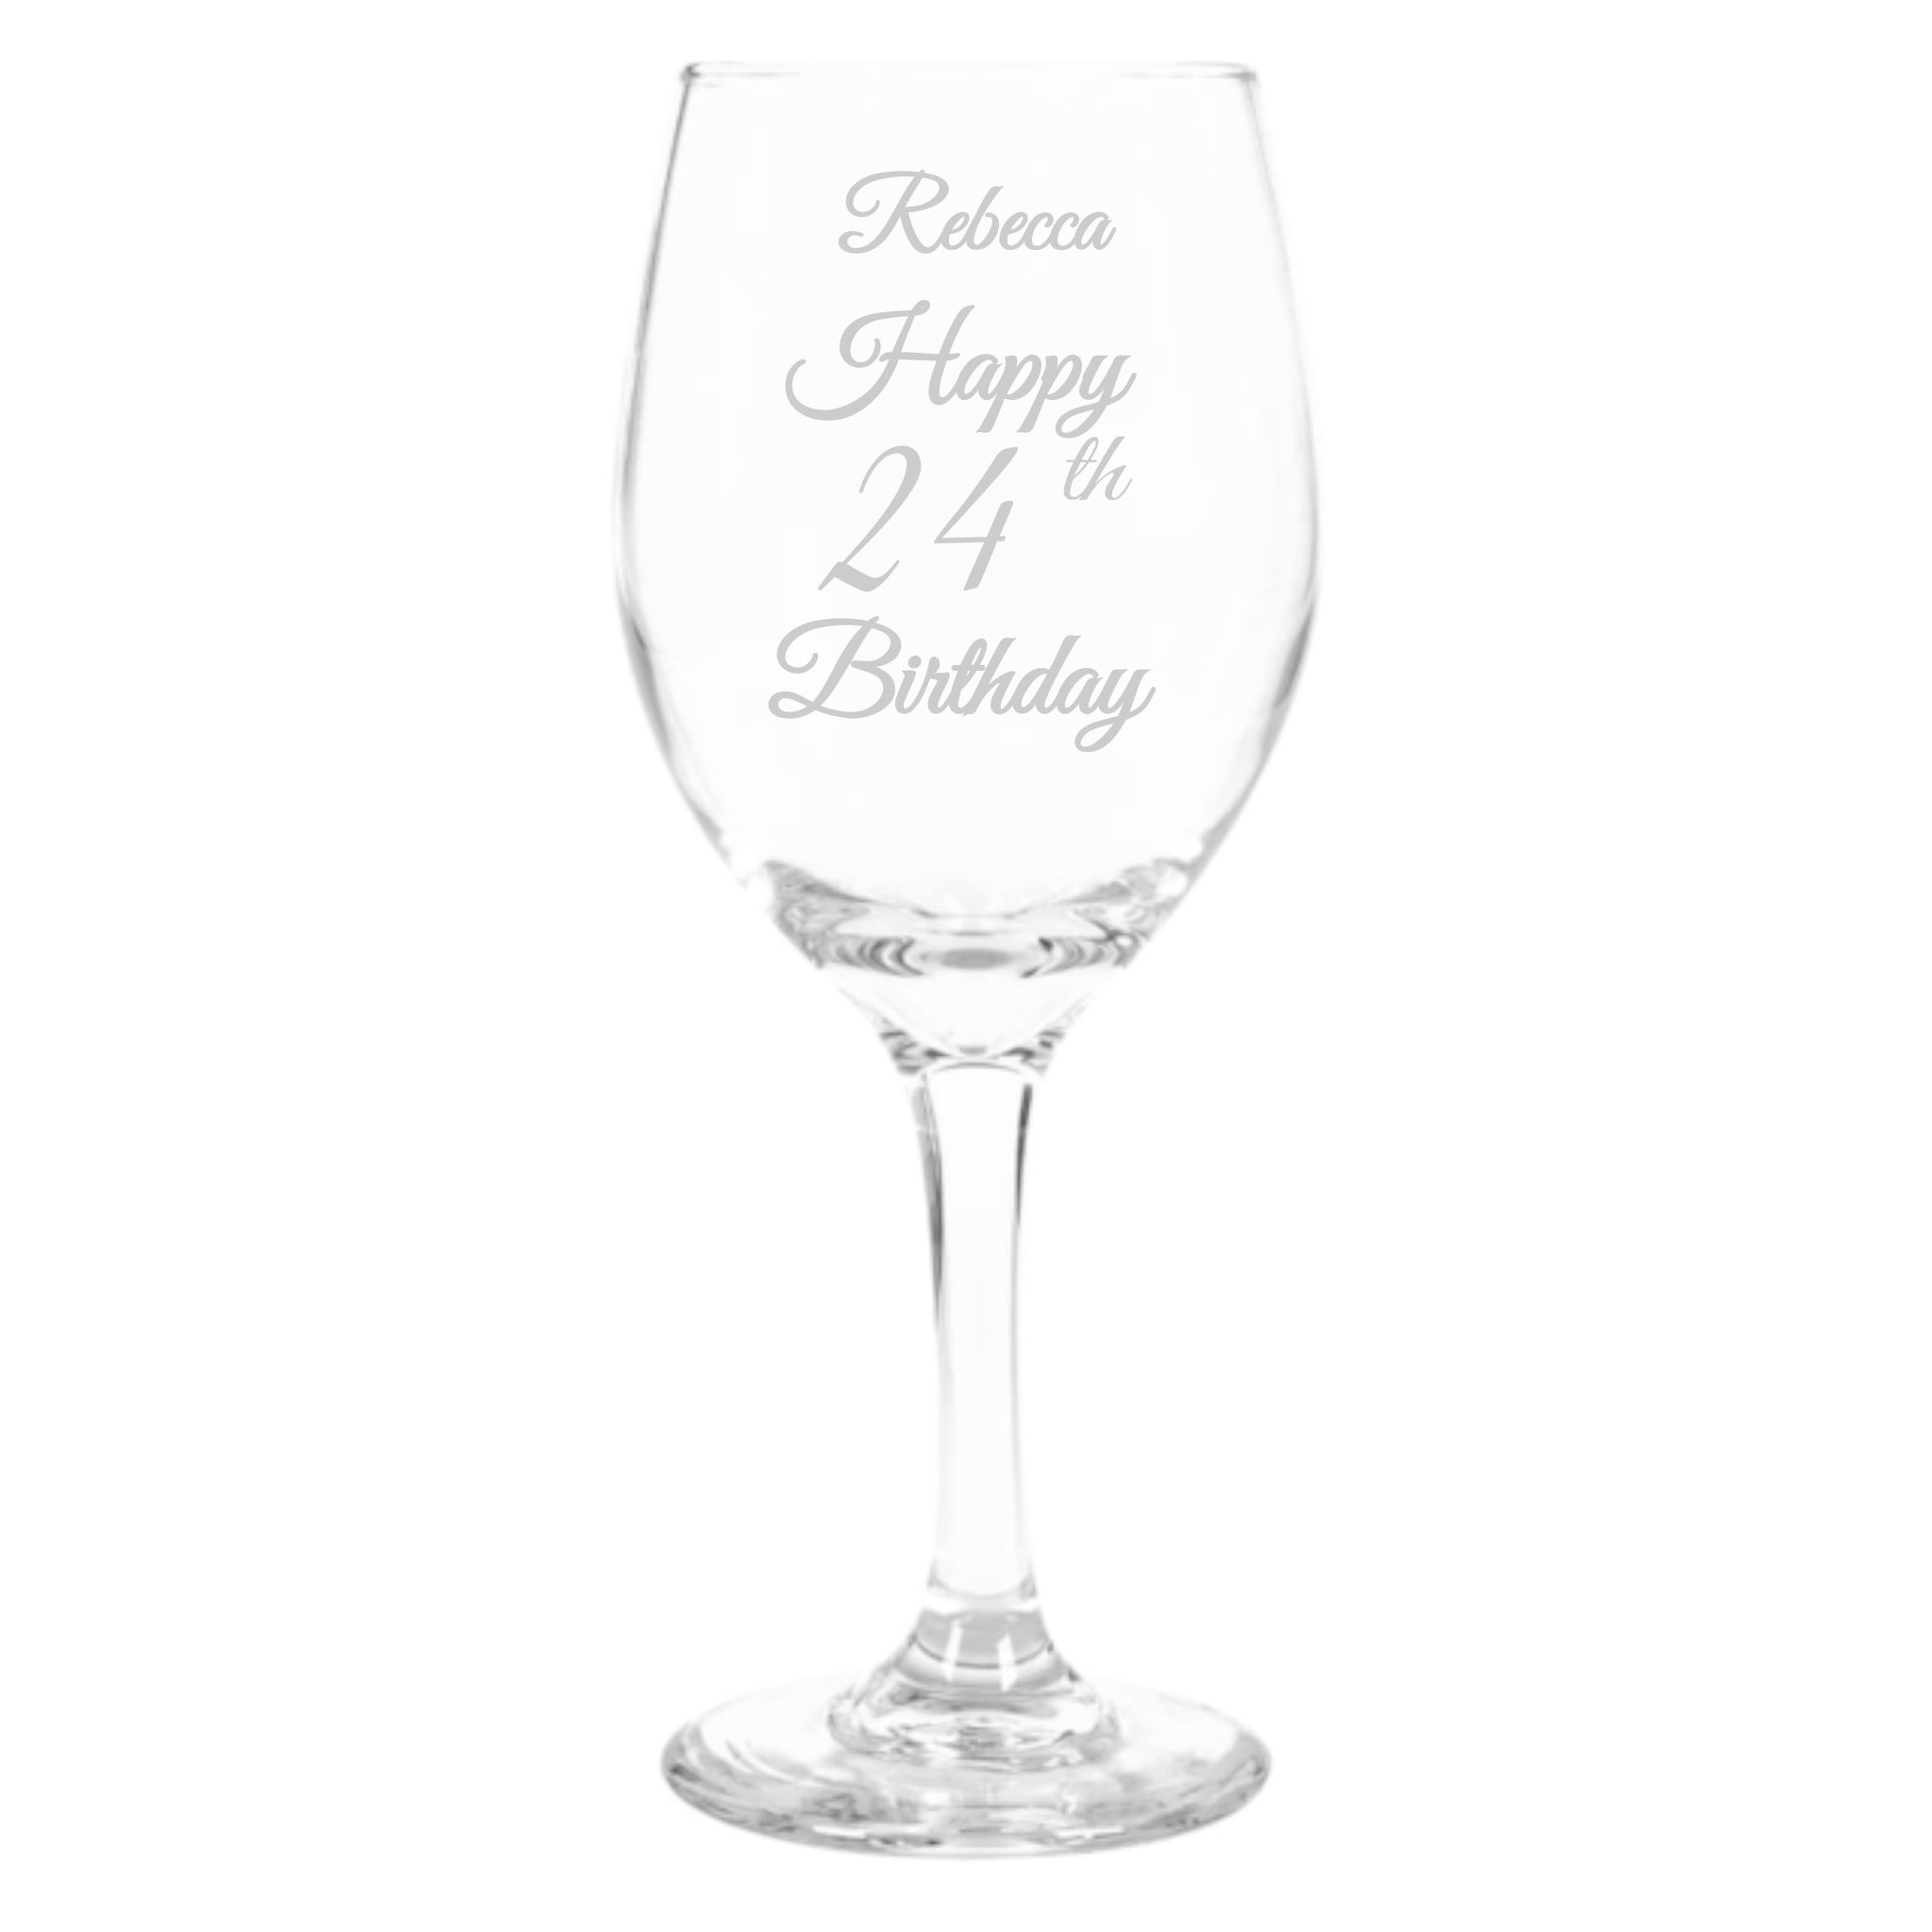 Beautiful hand-etched wine glass, personalized with name